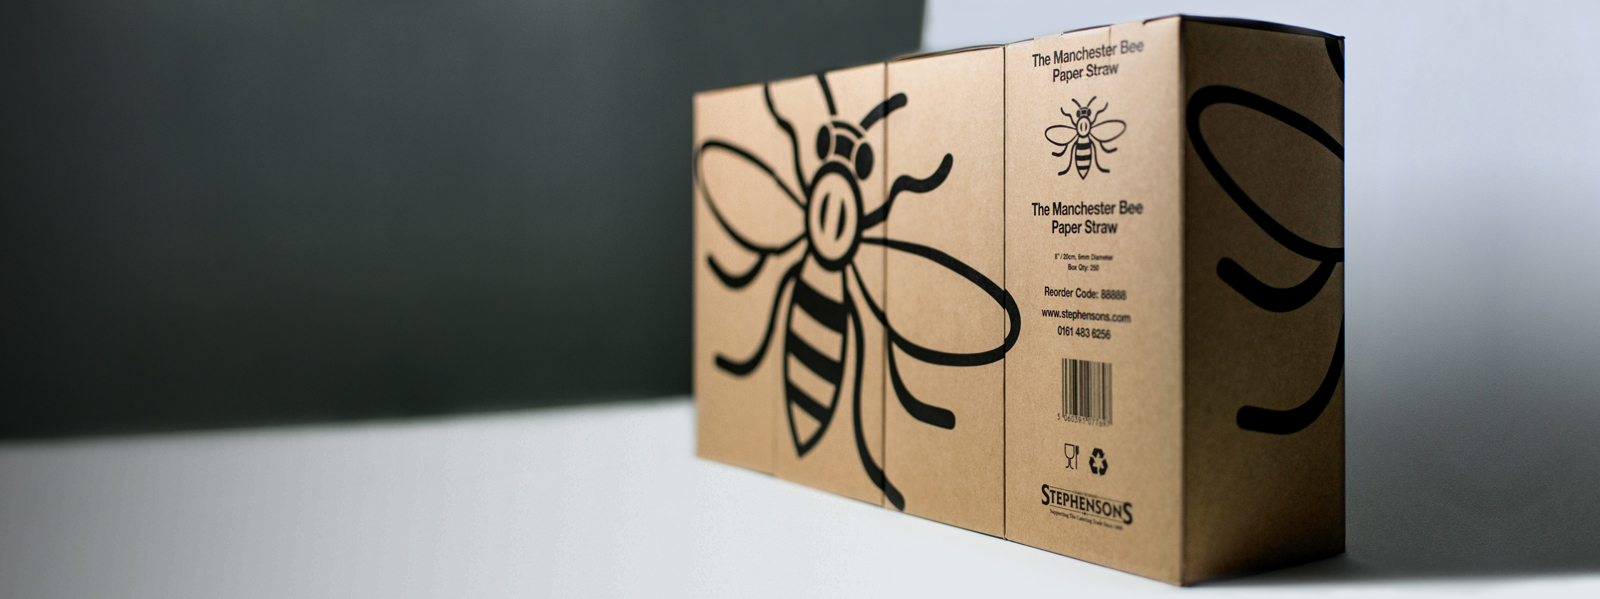 The Manchester Bee Paper Straw